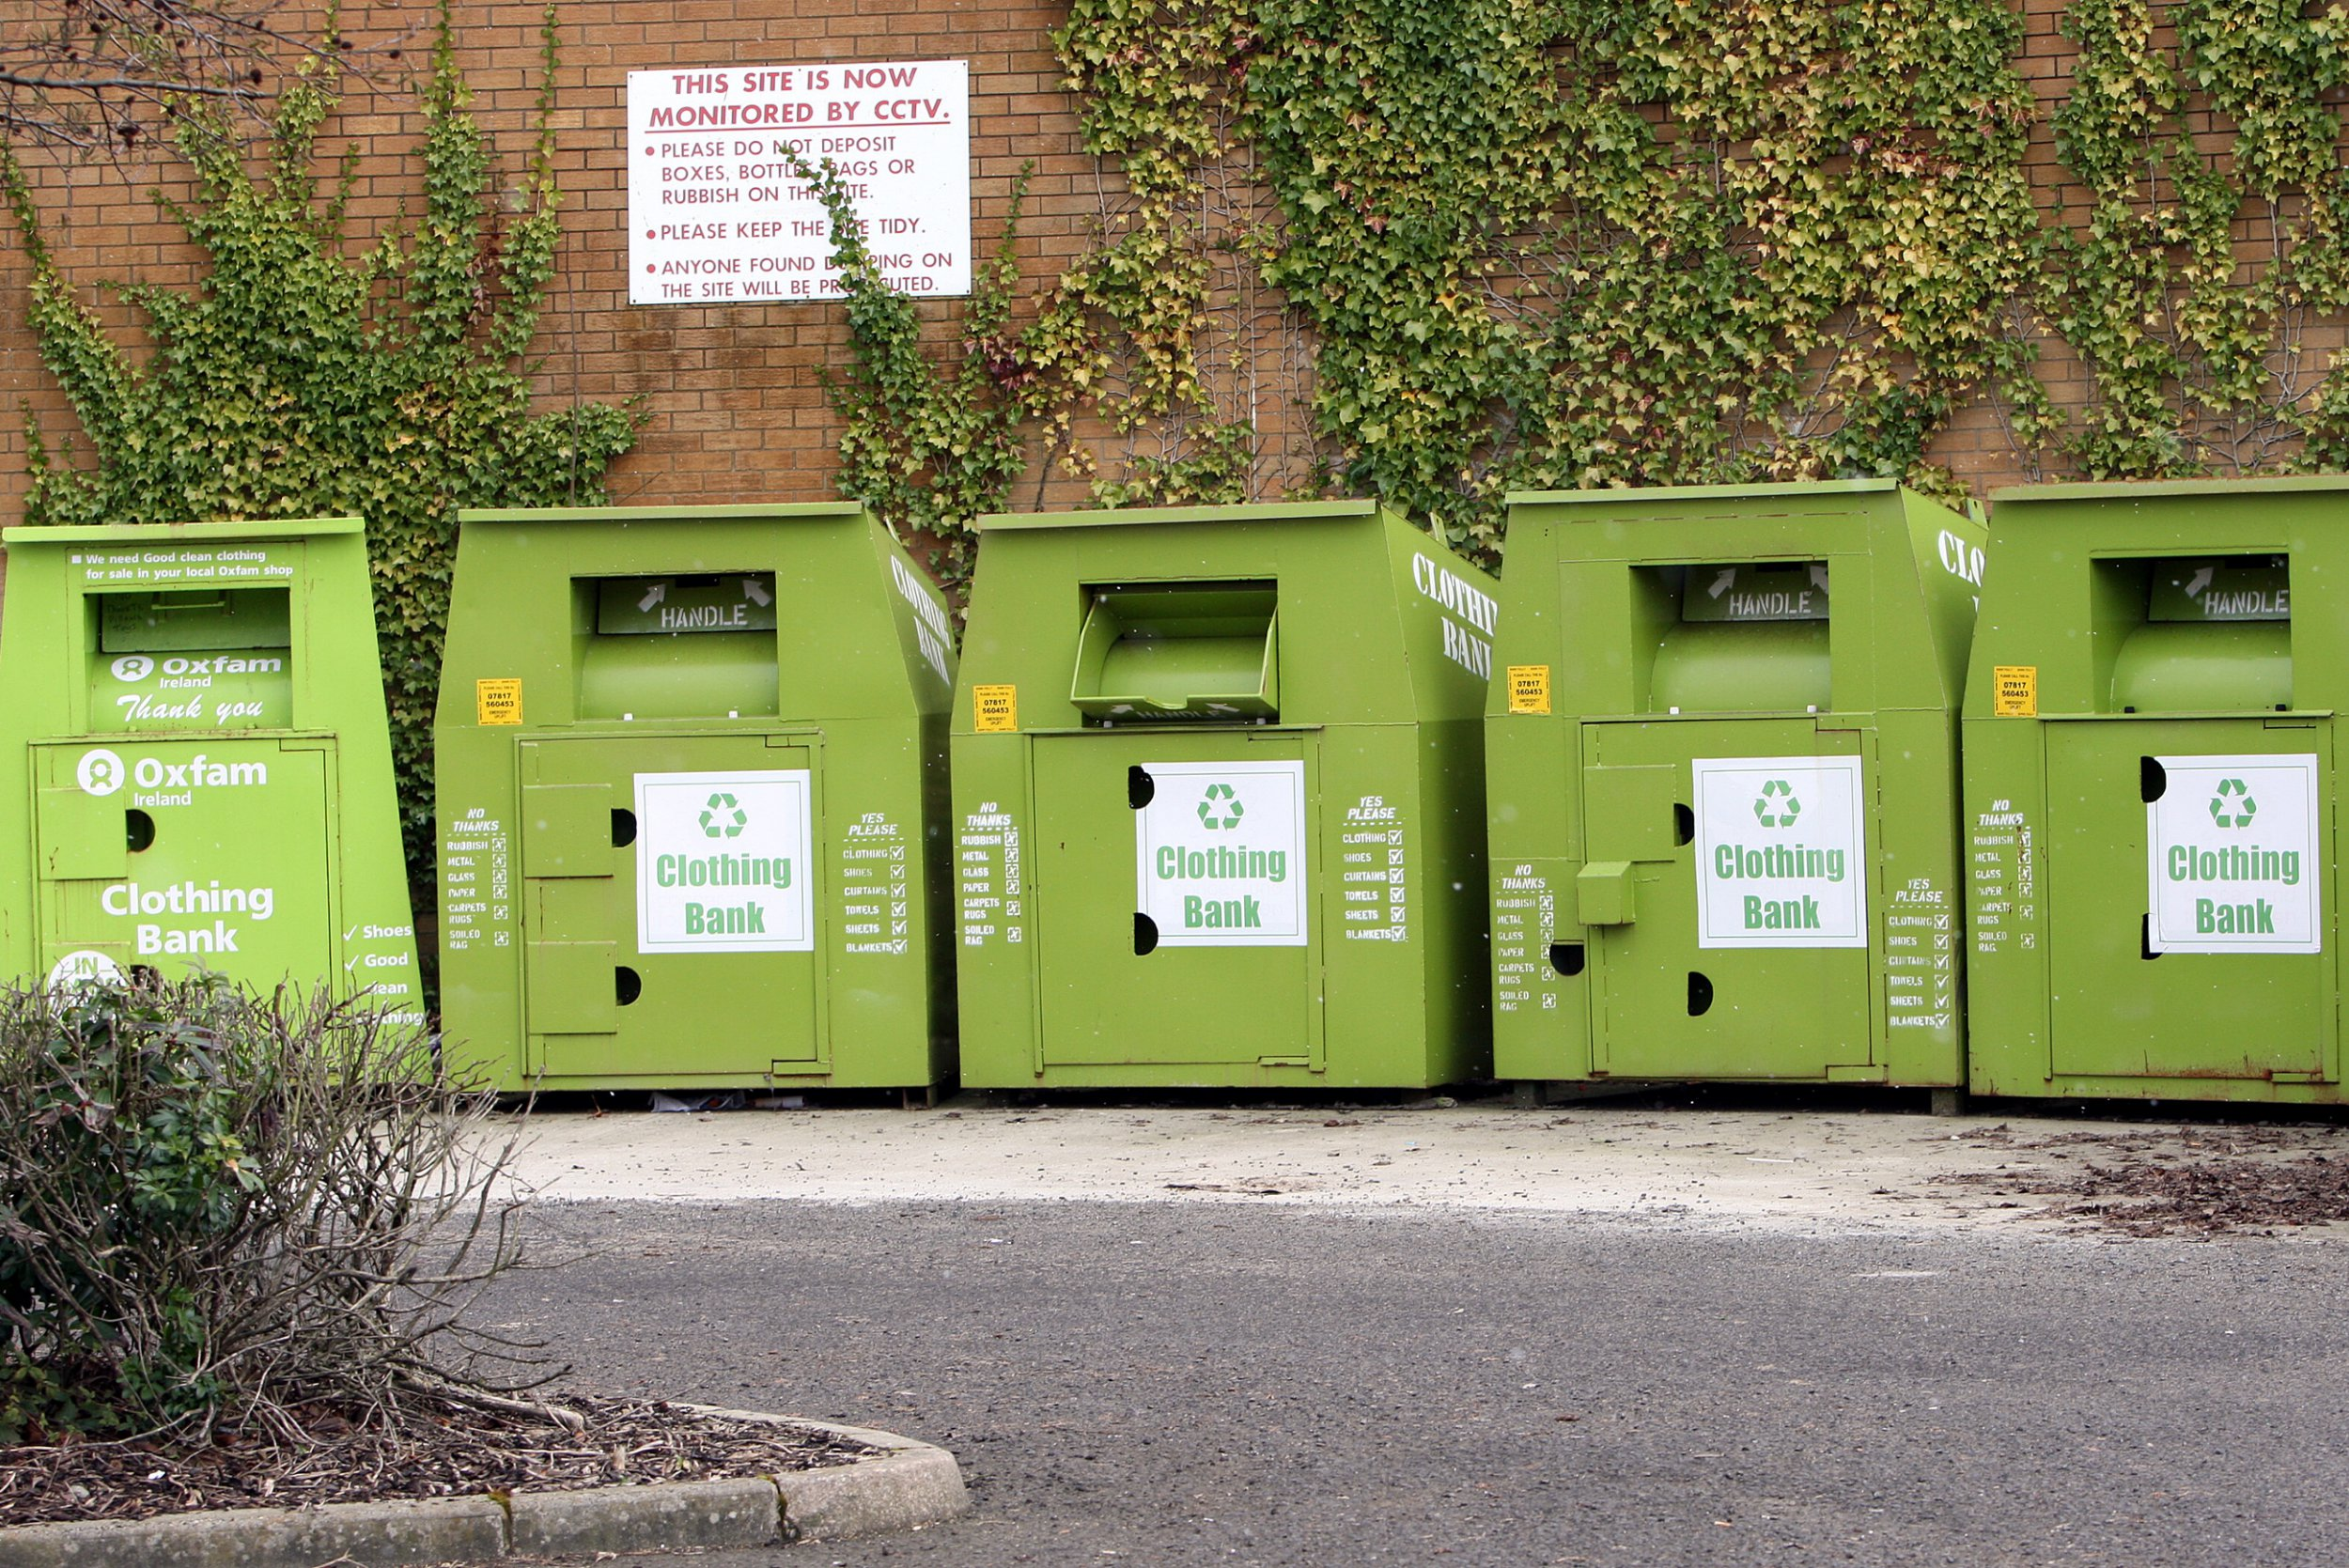 A general view of Clothes Recycling bins